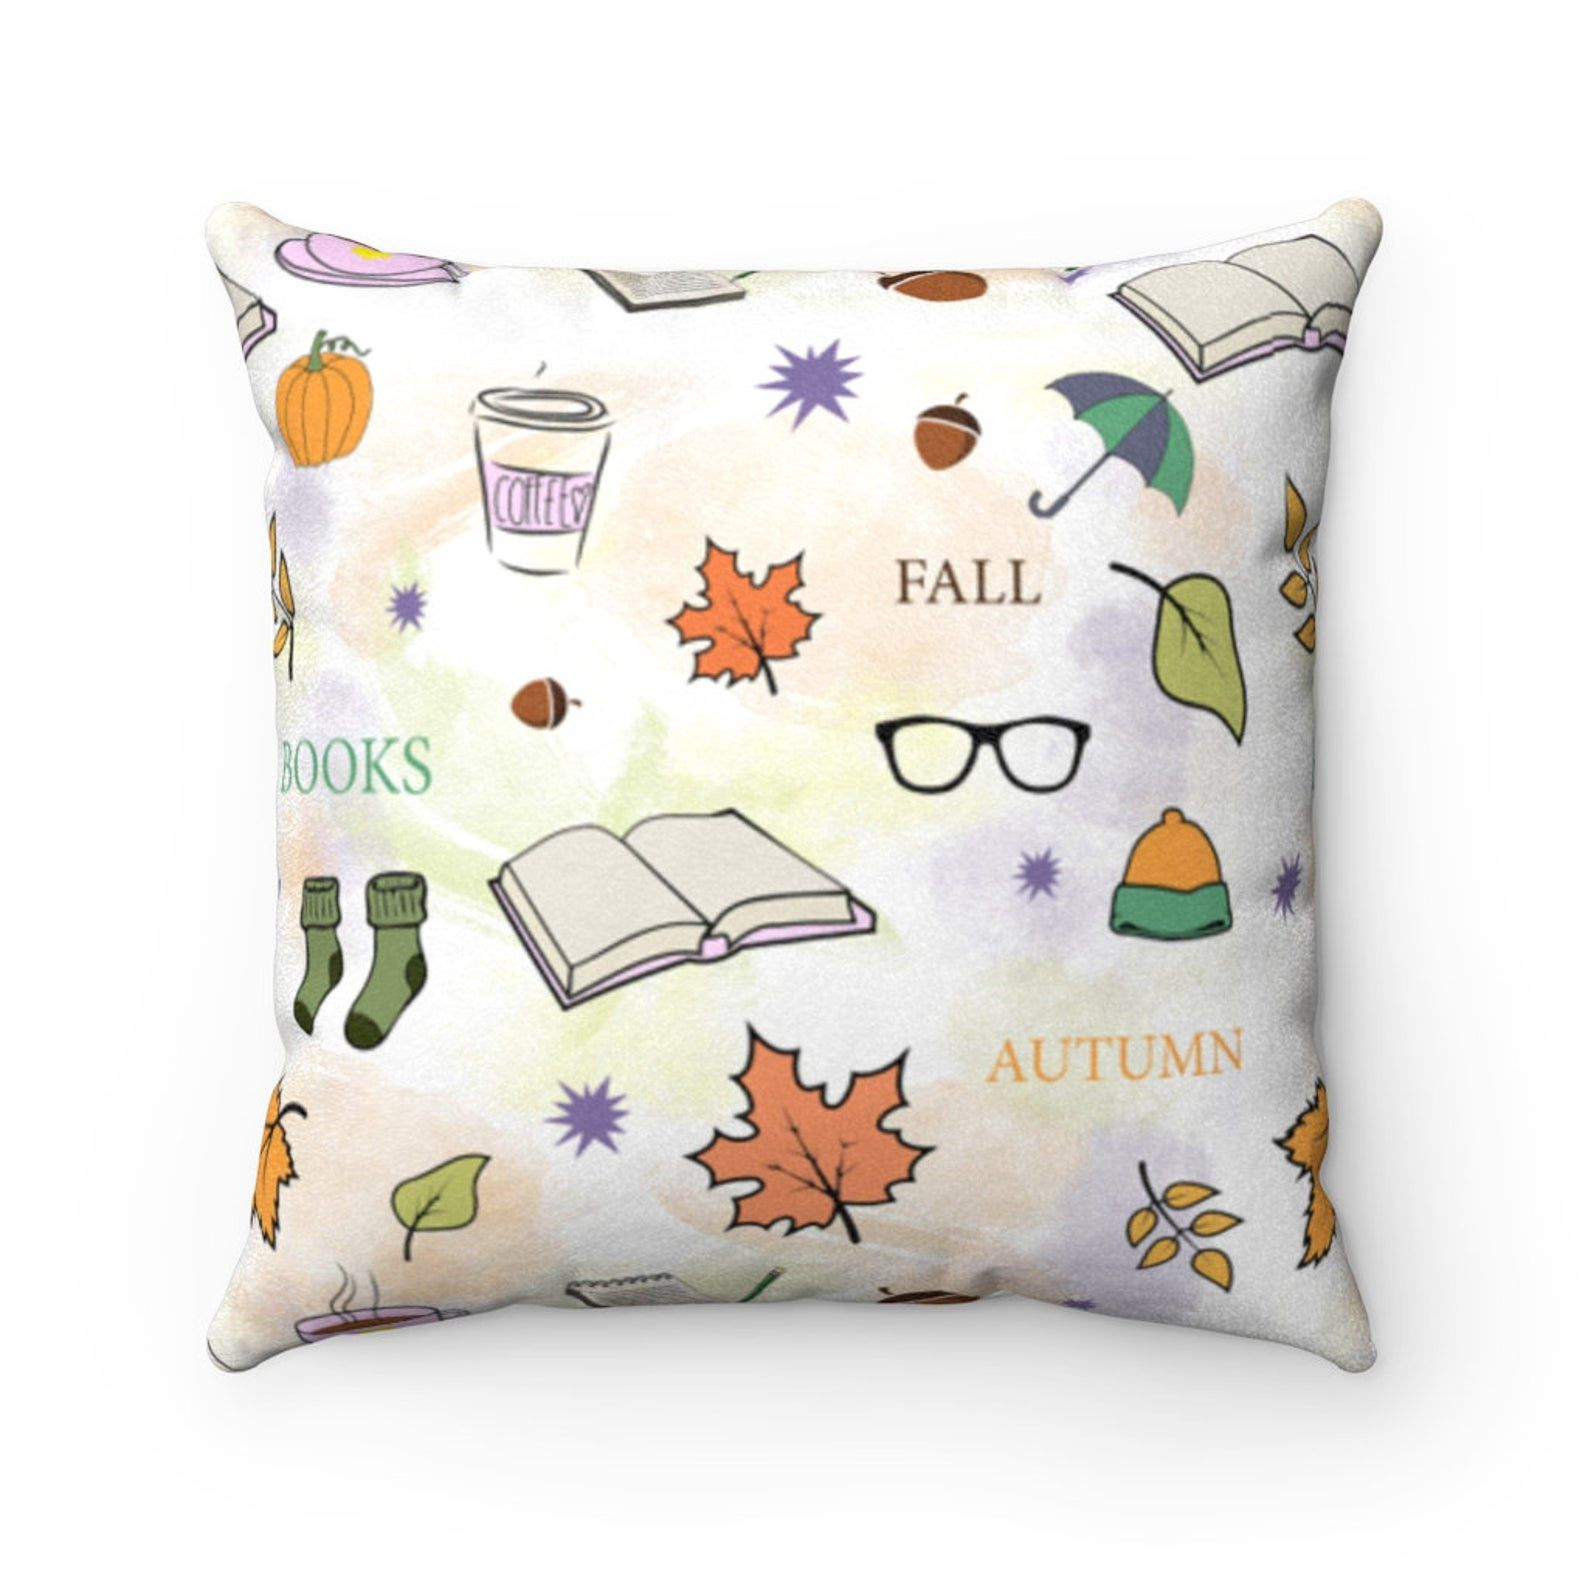 Image of a white throw pillow with fall images, including books, acorns, leaves, and cozy socks.